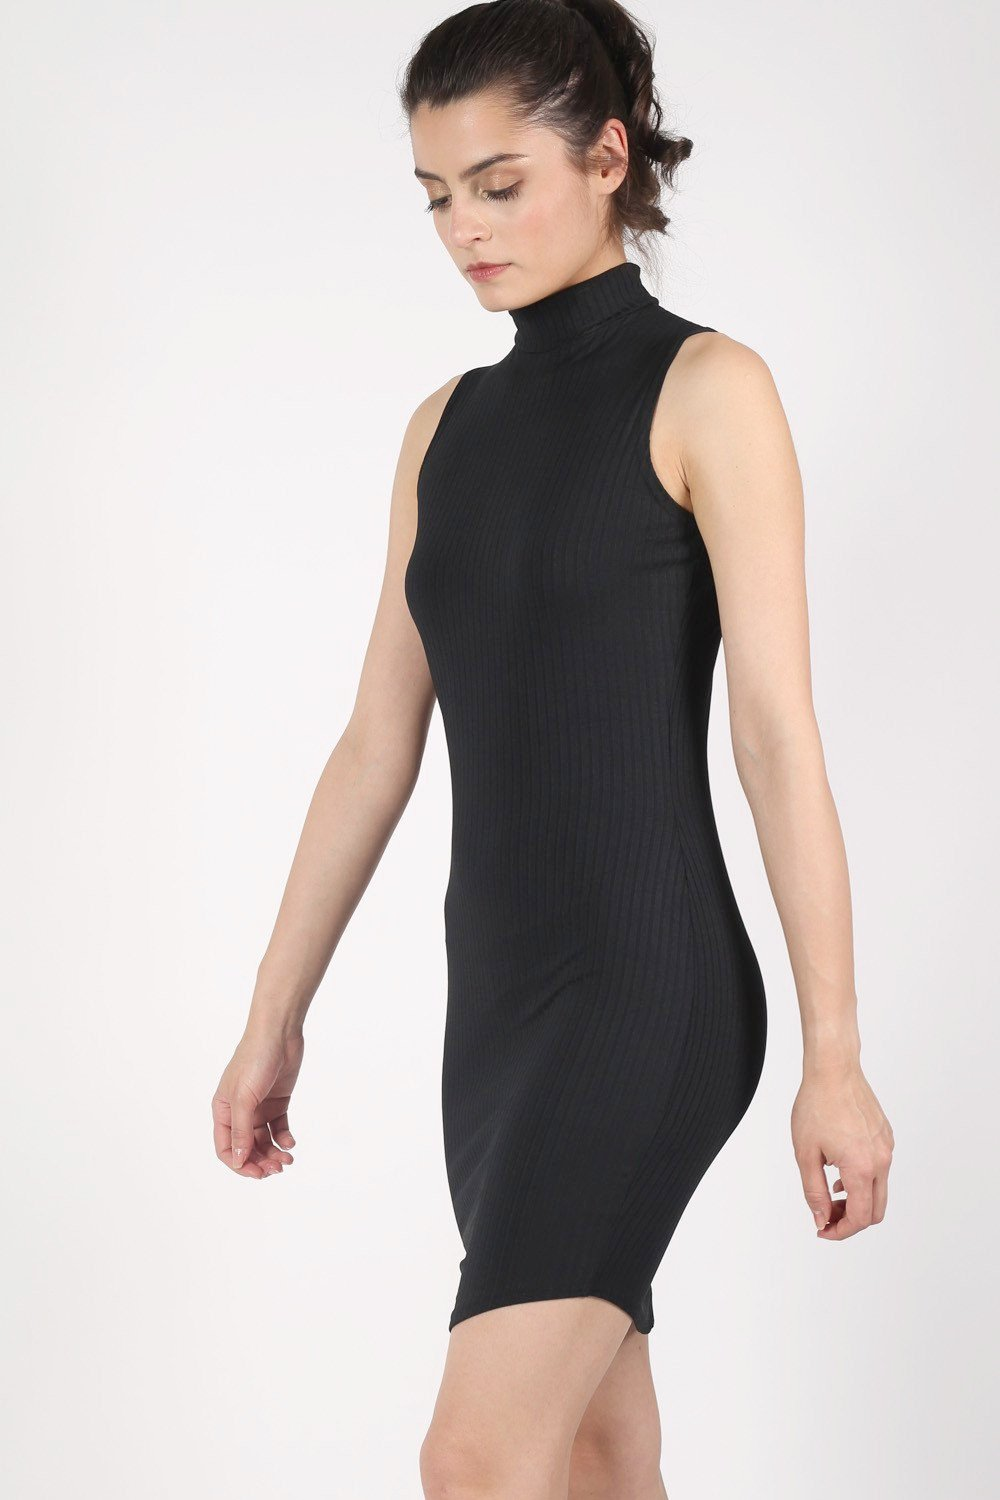 High Neck Sleeveless Rib Bodycon Dress in Black 0